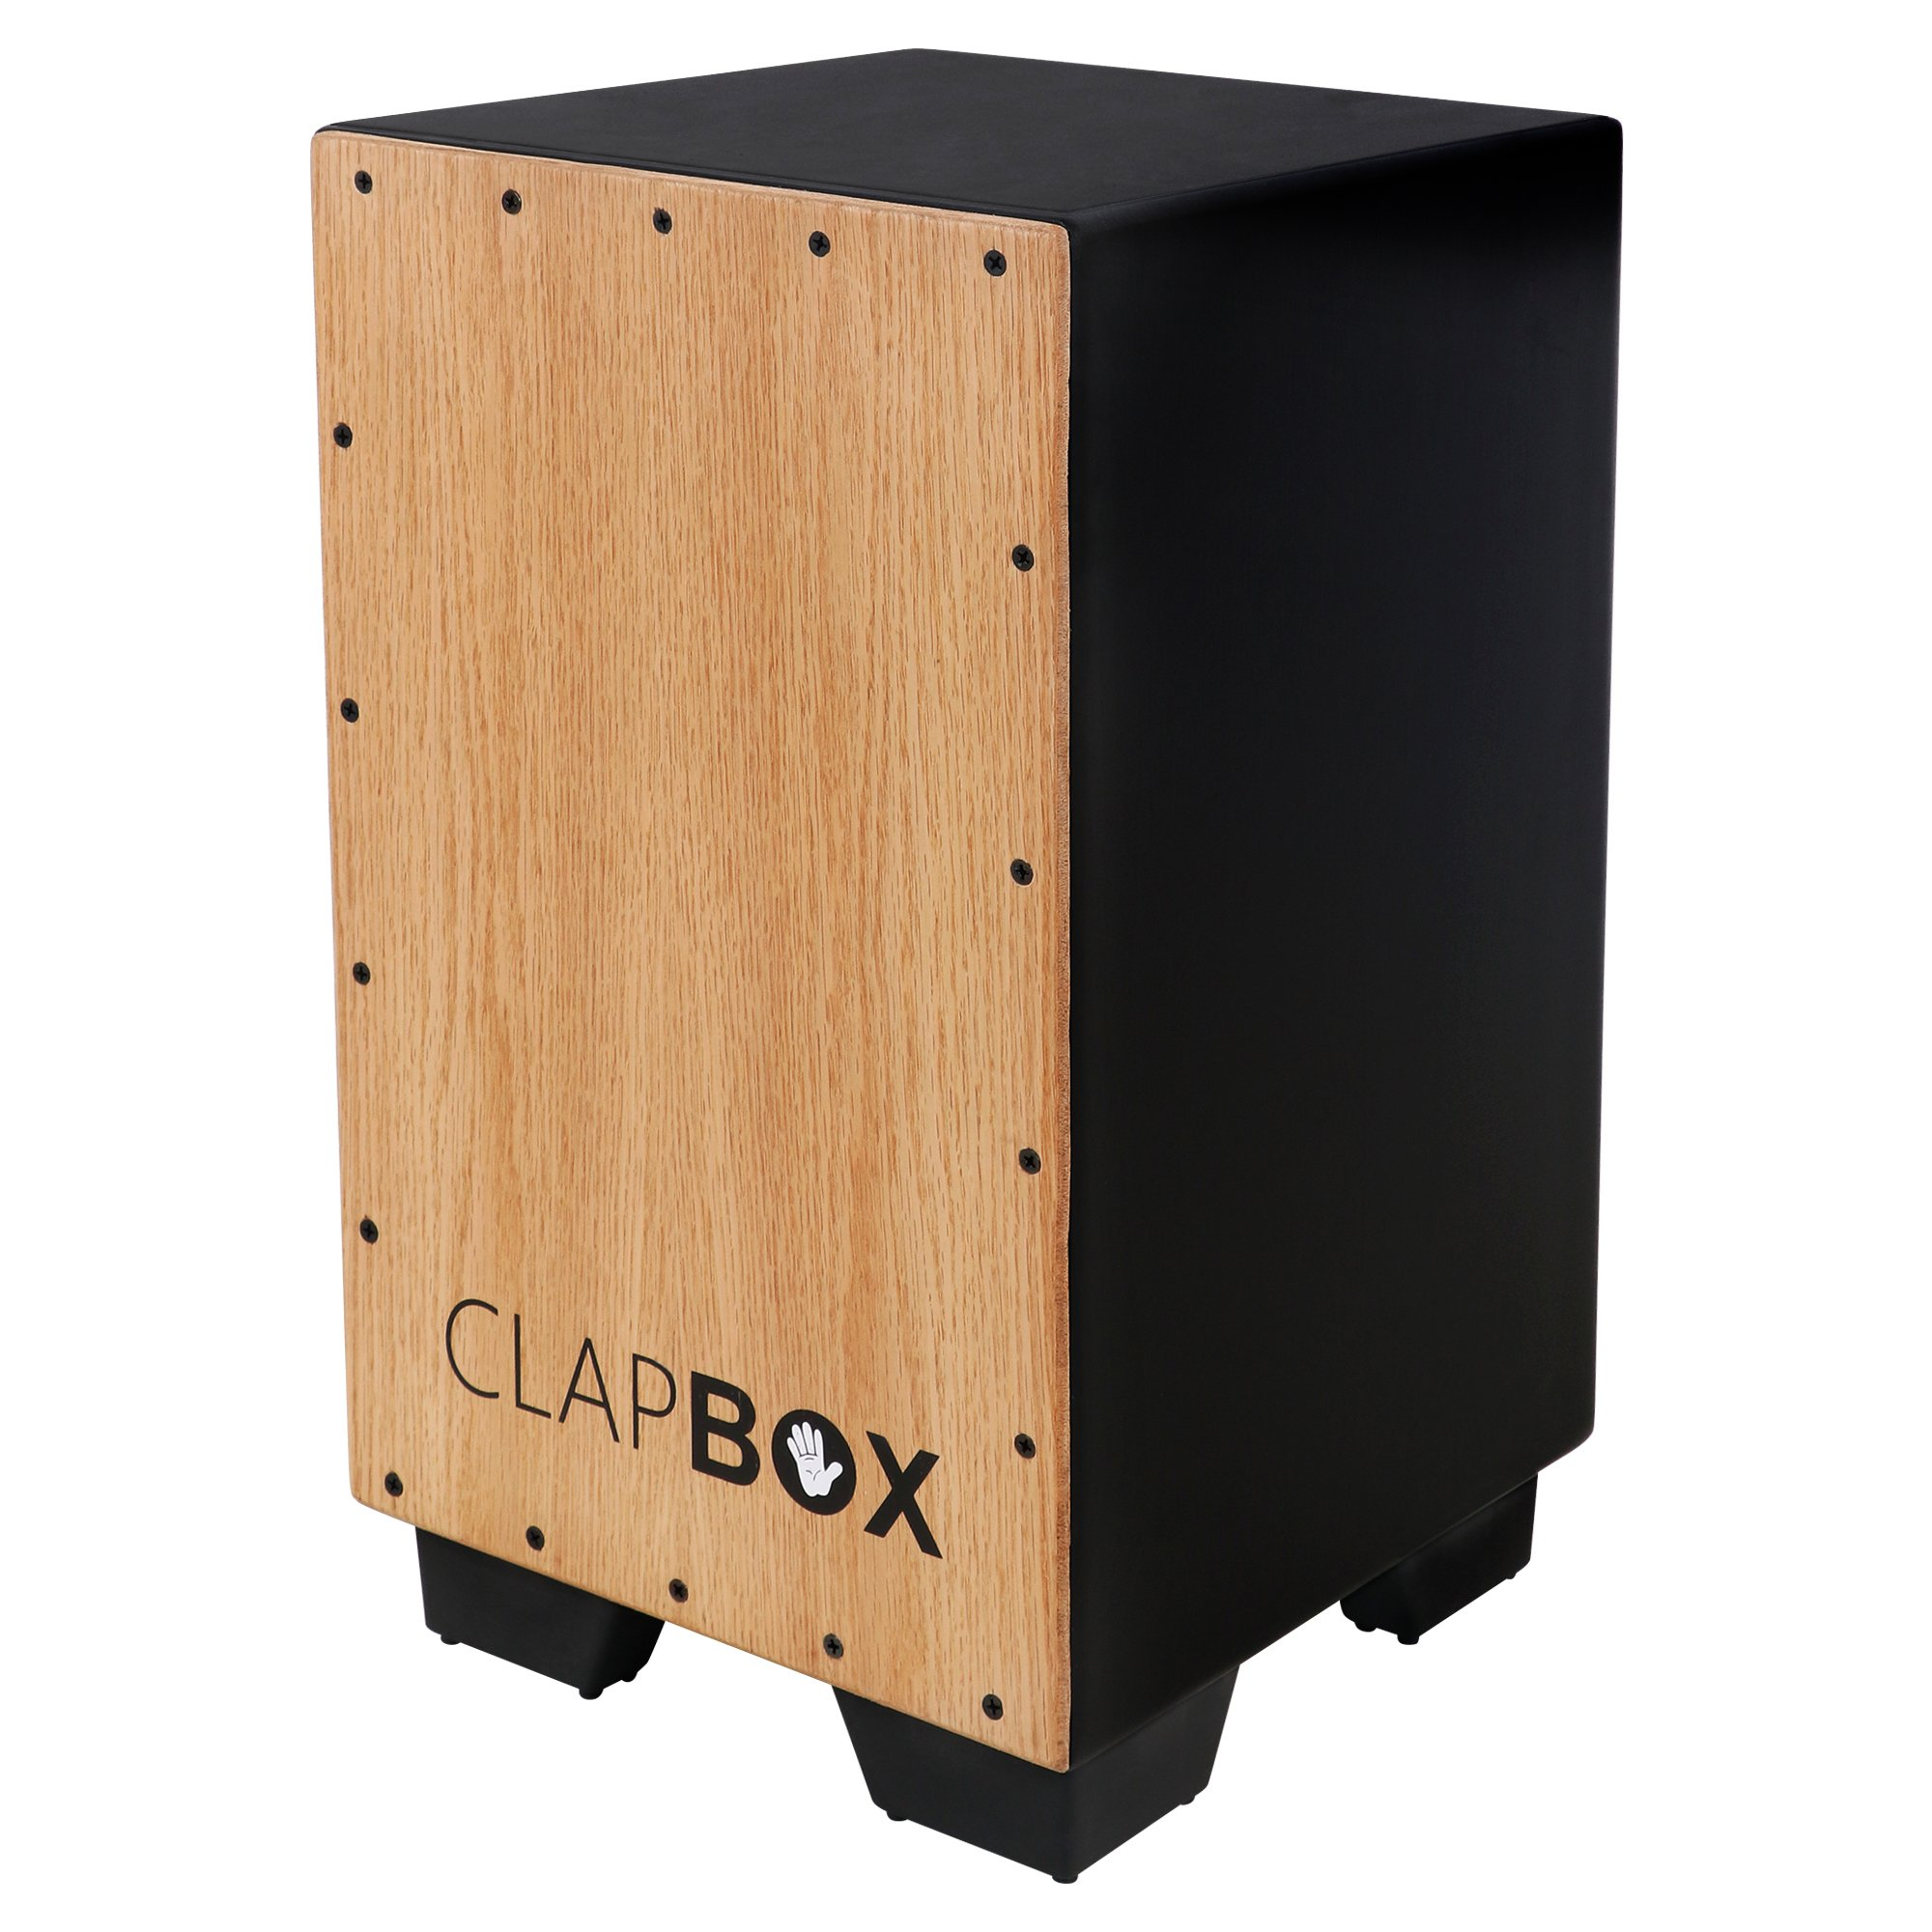 Clapbox Cajon CB11 -Black, Oak Wood (H:50 W:30 L:30) - 3 Internal Snares product image